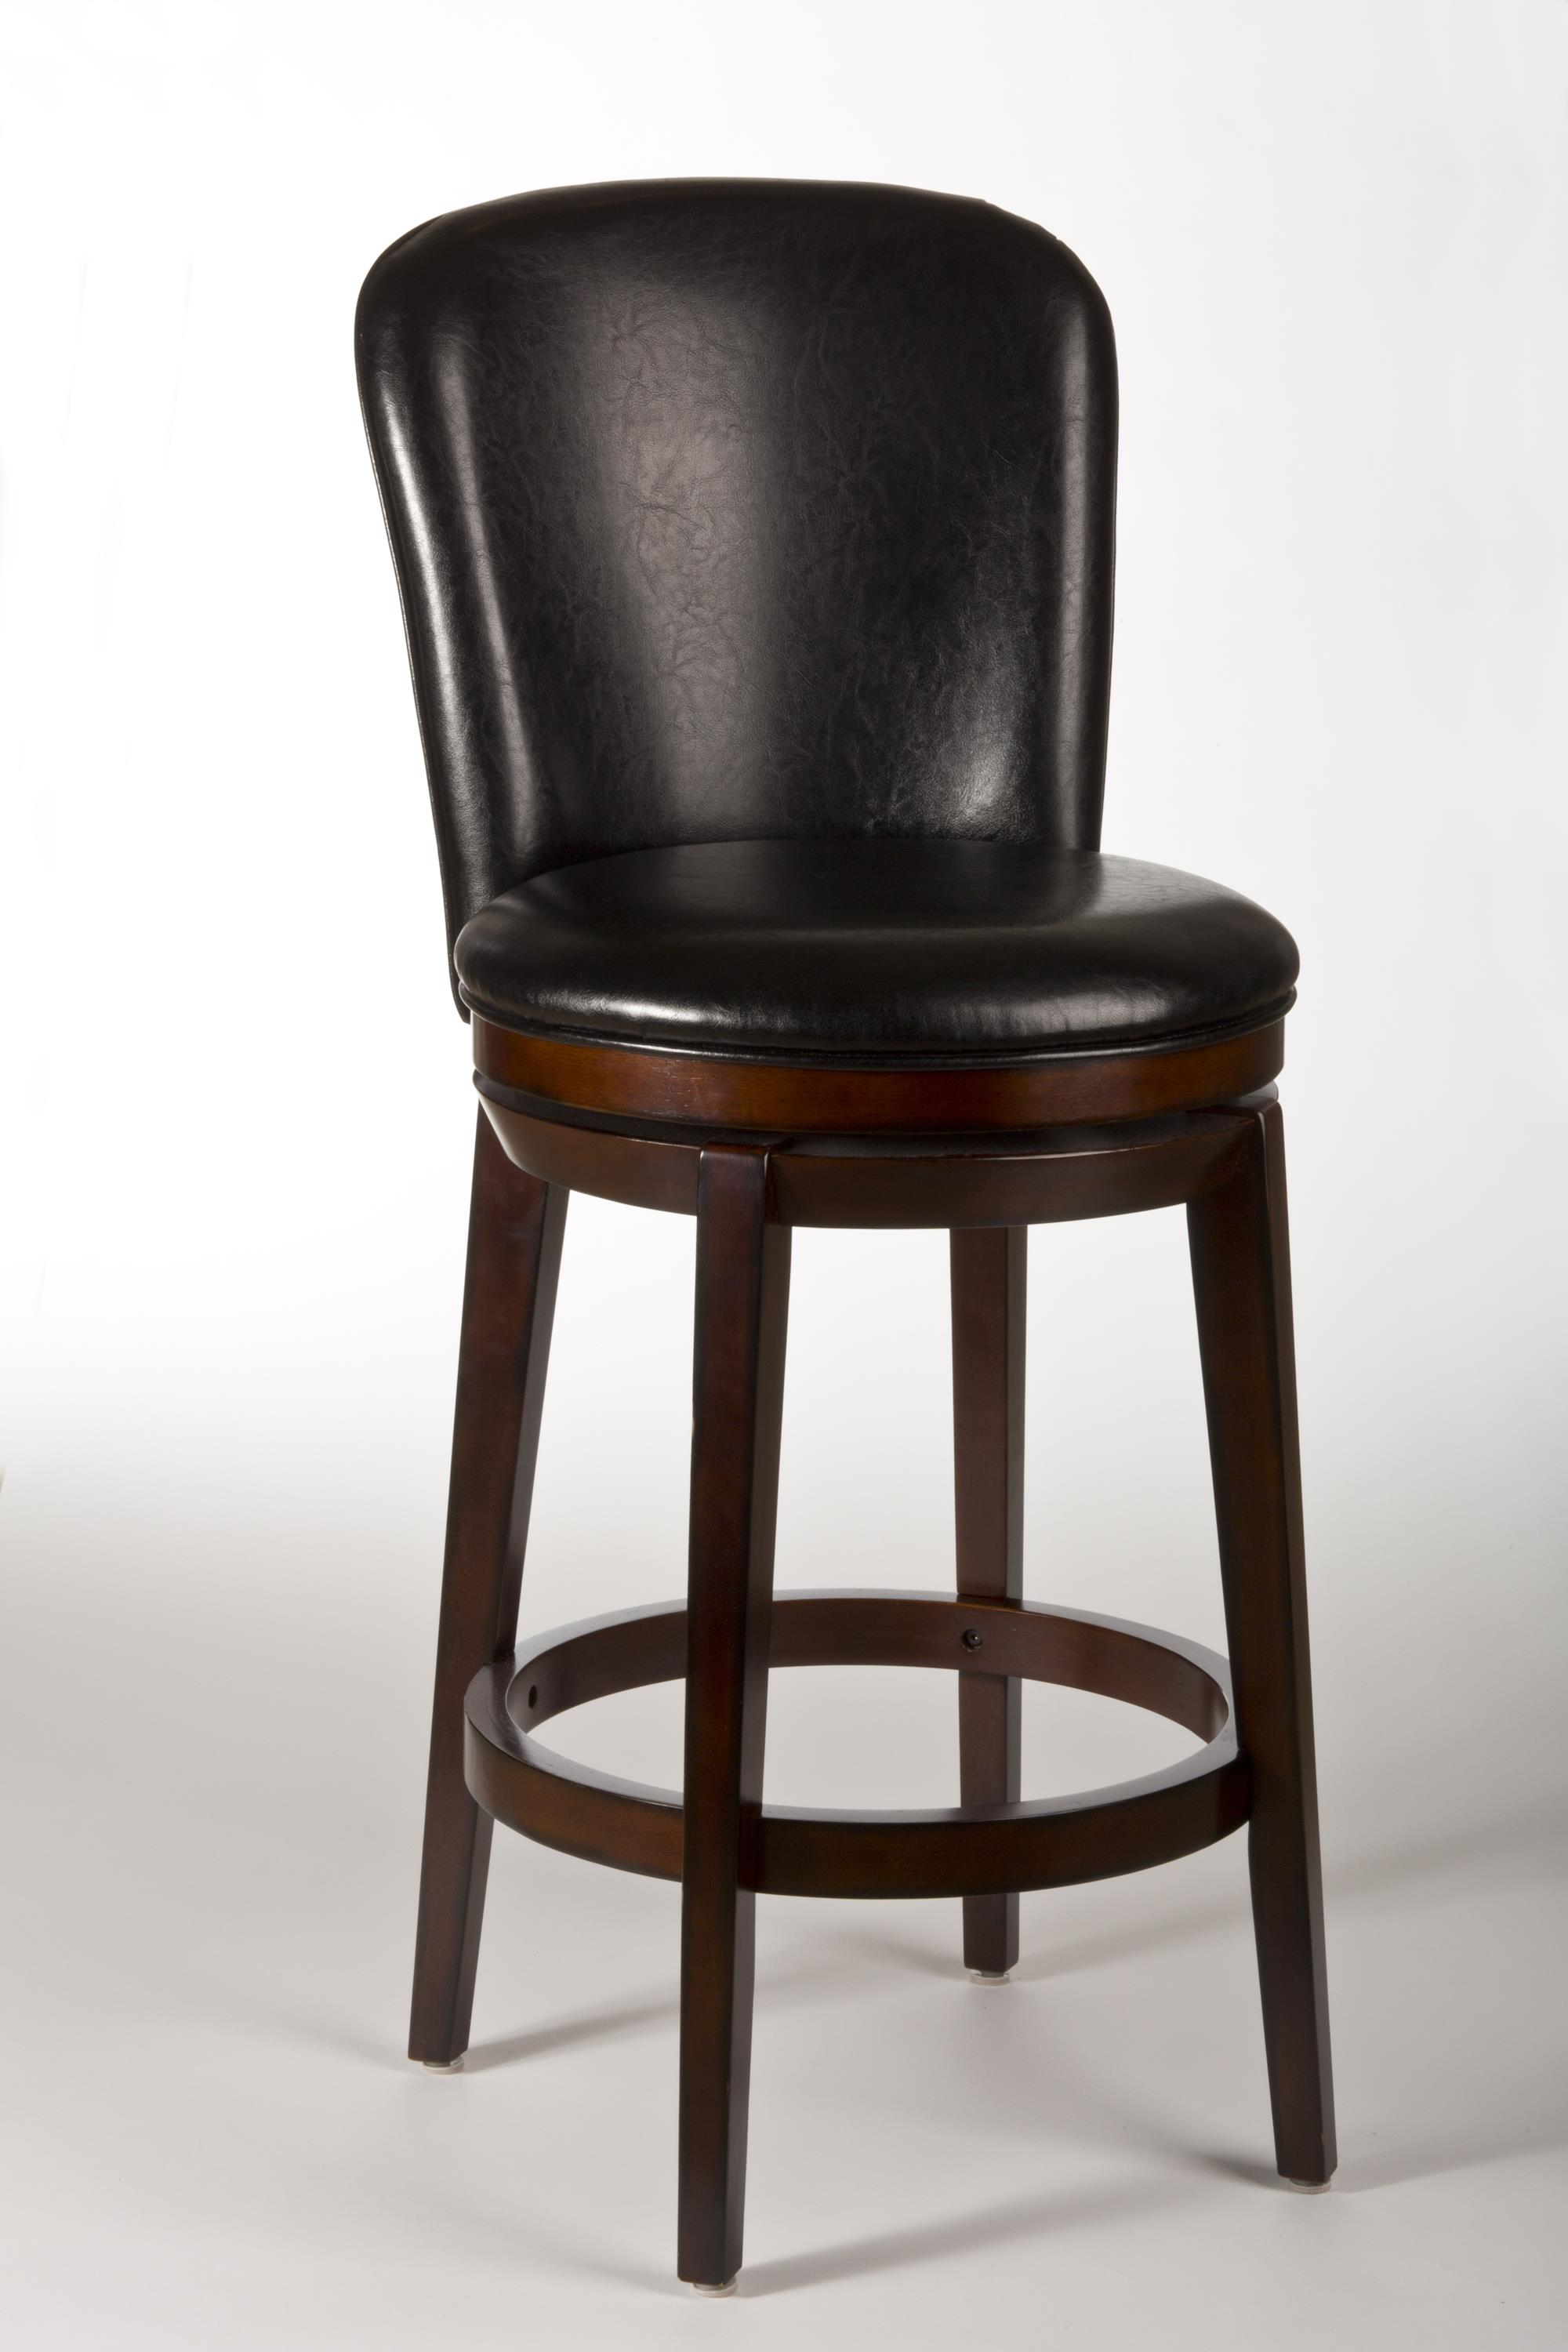 Stools Swivel Counter Stool by Hillsdale at Corner Furniture